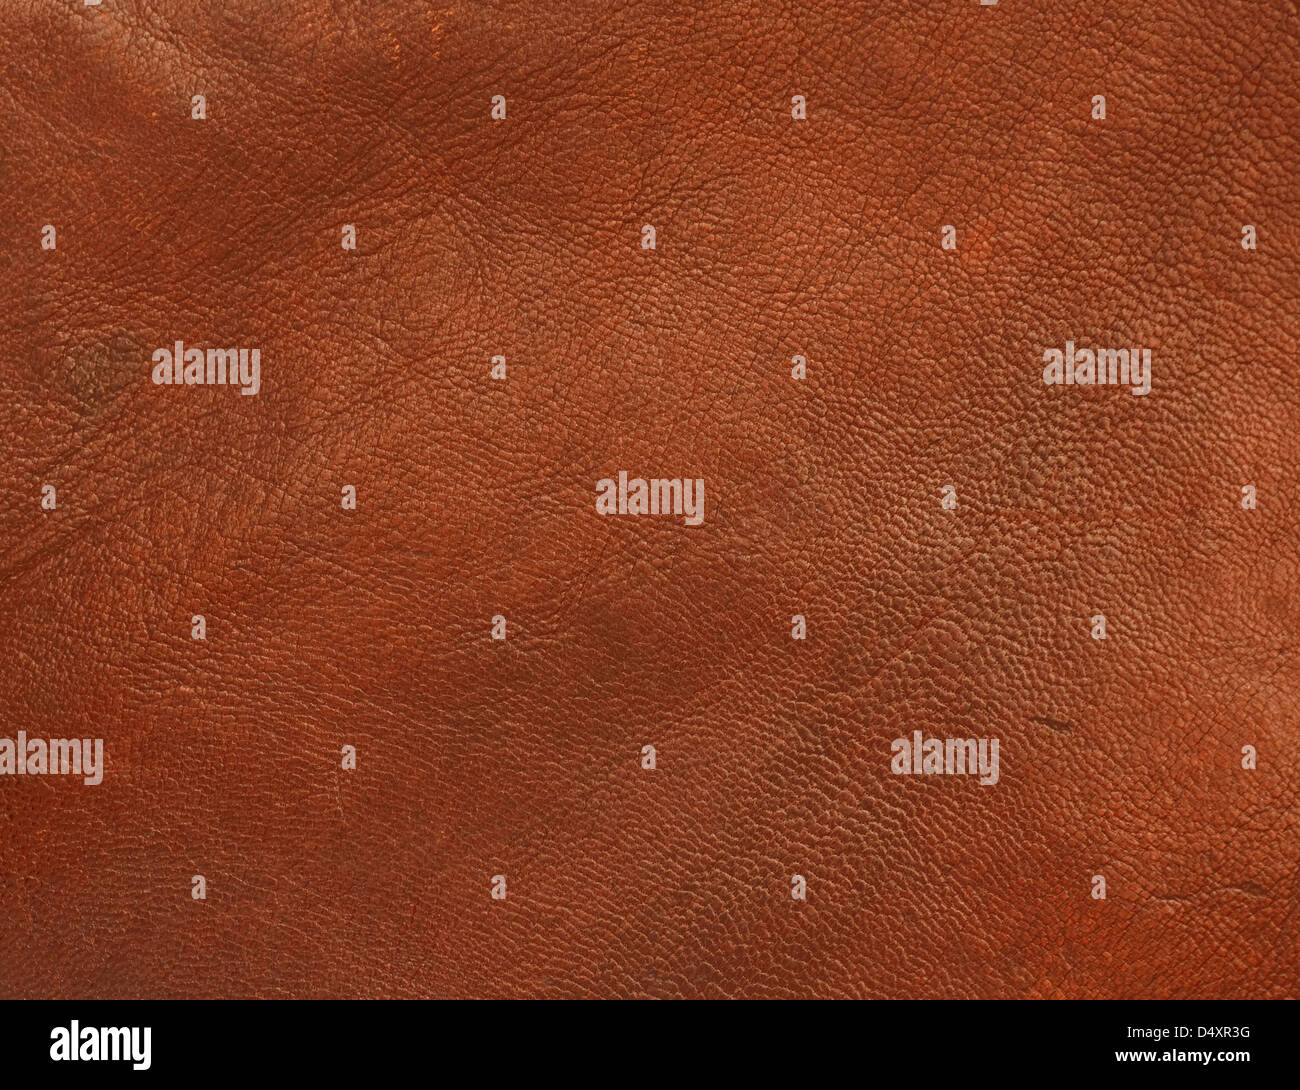 Genuine leather background of brown polished shiny animal skin - Stock Image